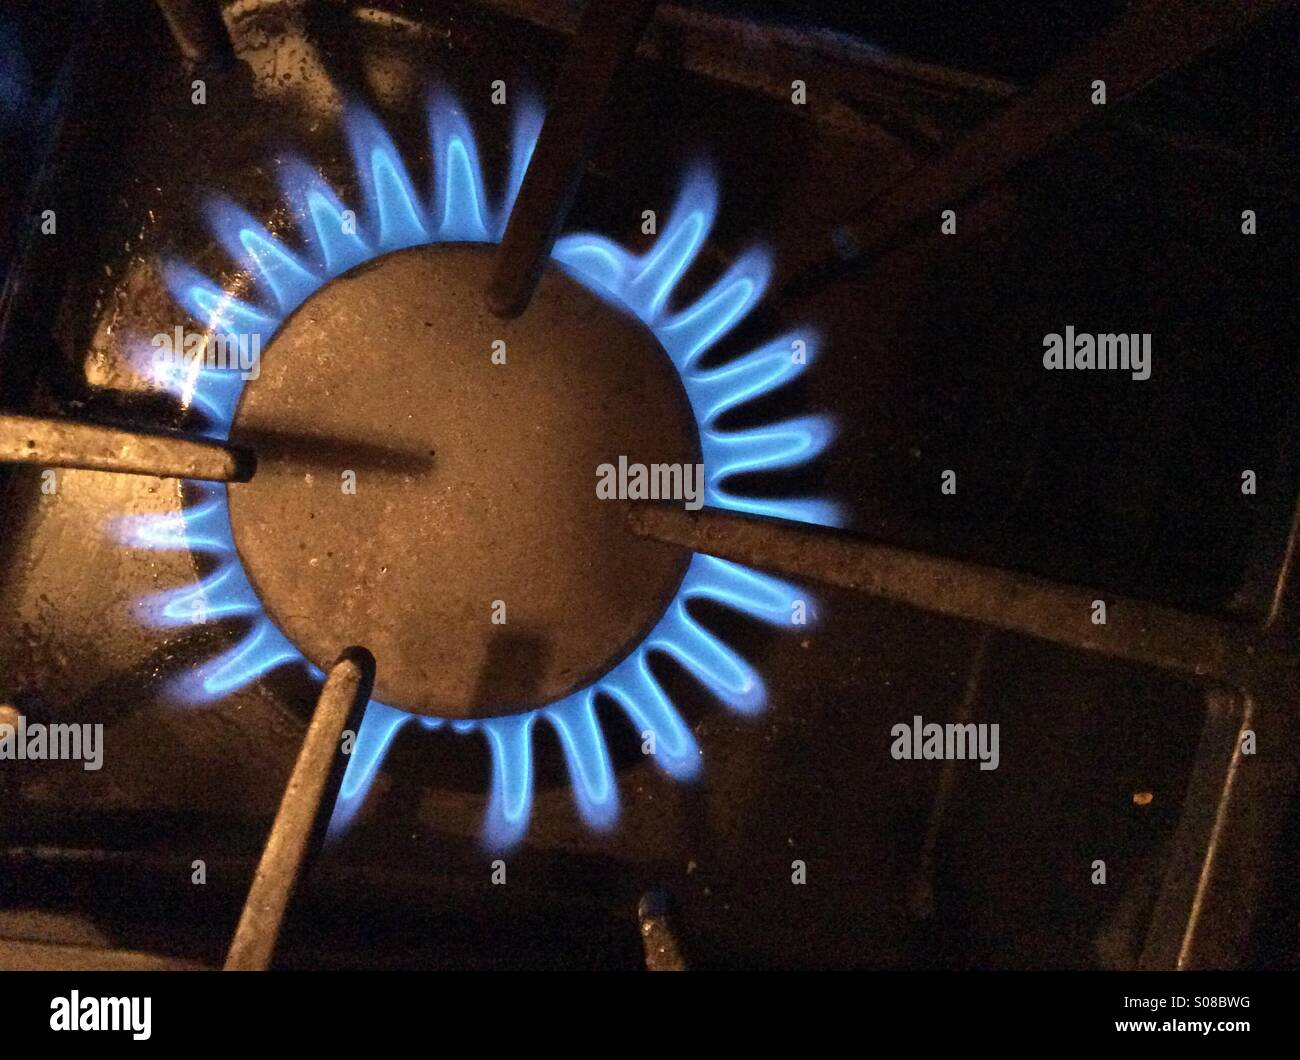 Gas stove - Stock Image